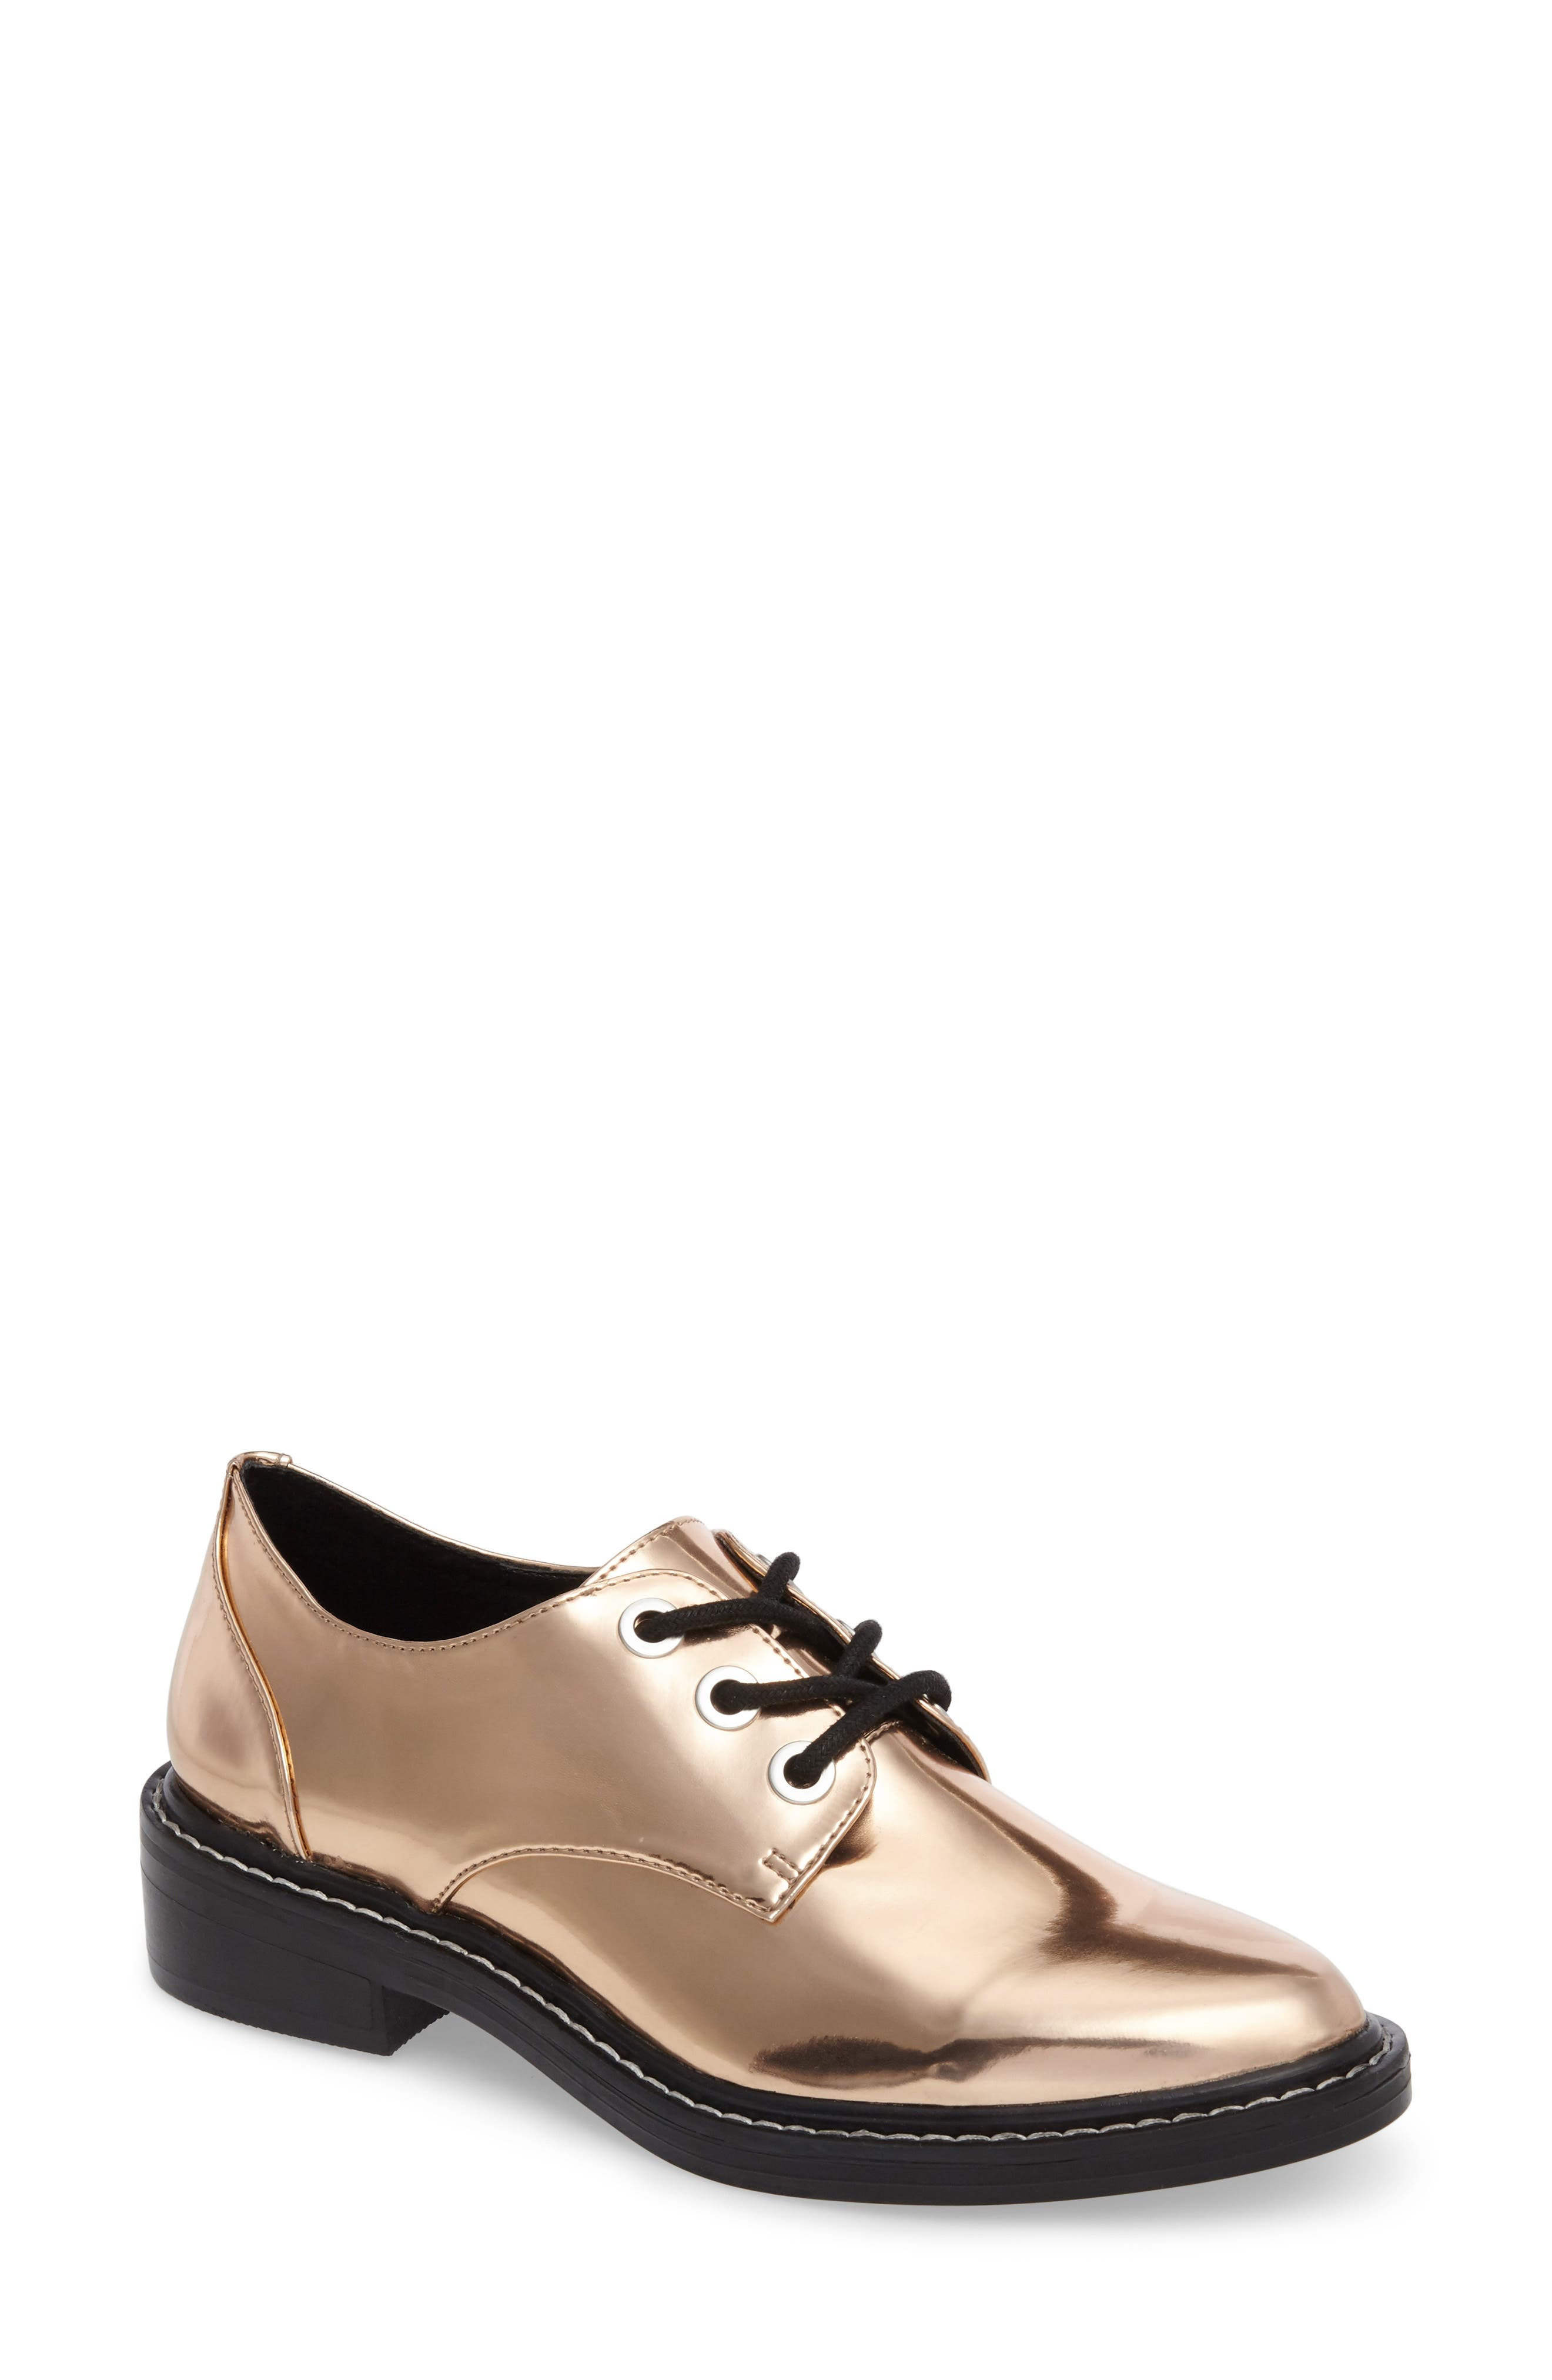 Steve Madden Little Lace-up Oxford (Women)